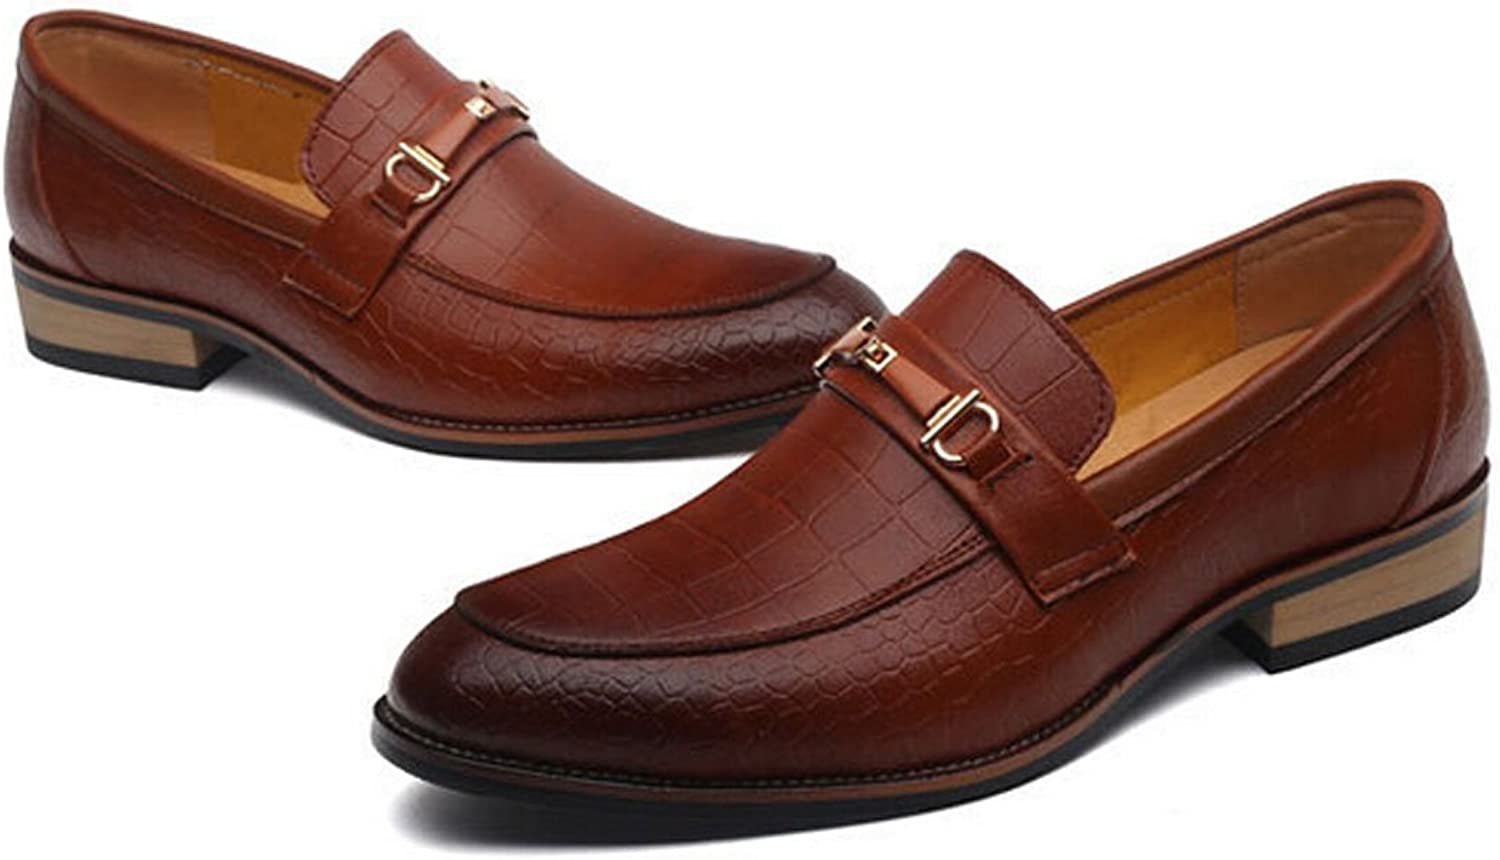 San hojas Men's Loafers Dress Classic Formal Oxfords Slip On Genuine Leather Lining Modern shoes